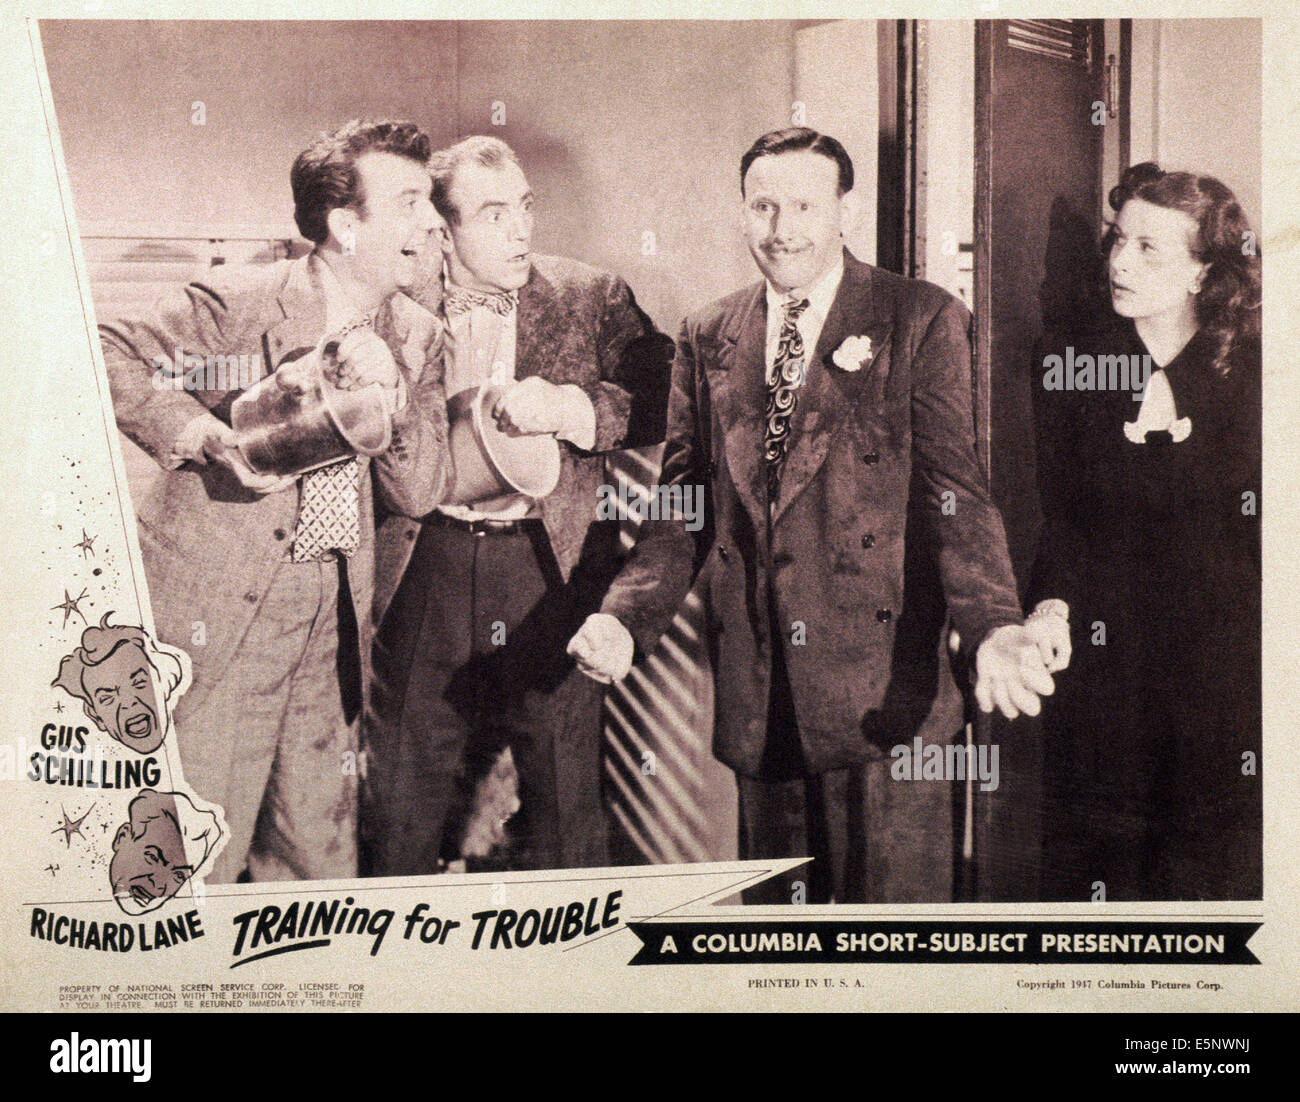 TRAINING FOR TROUBLE, US lobbycard, from left: Gus Schilling, Richard Lane, Sid Fields, Sherry O'Neil, 1947 Stock Photo